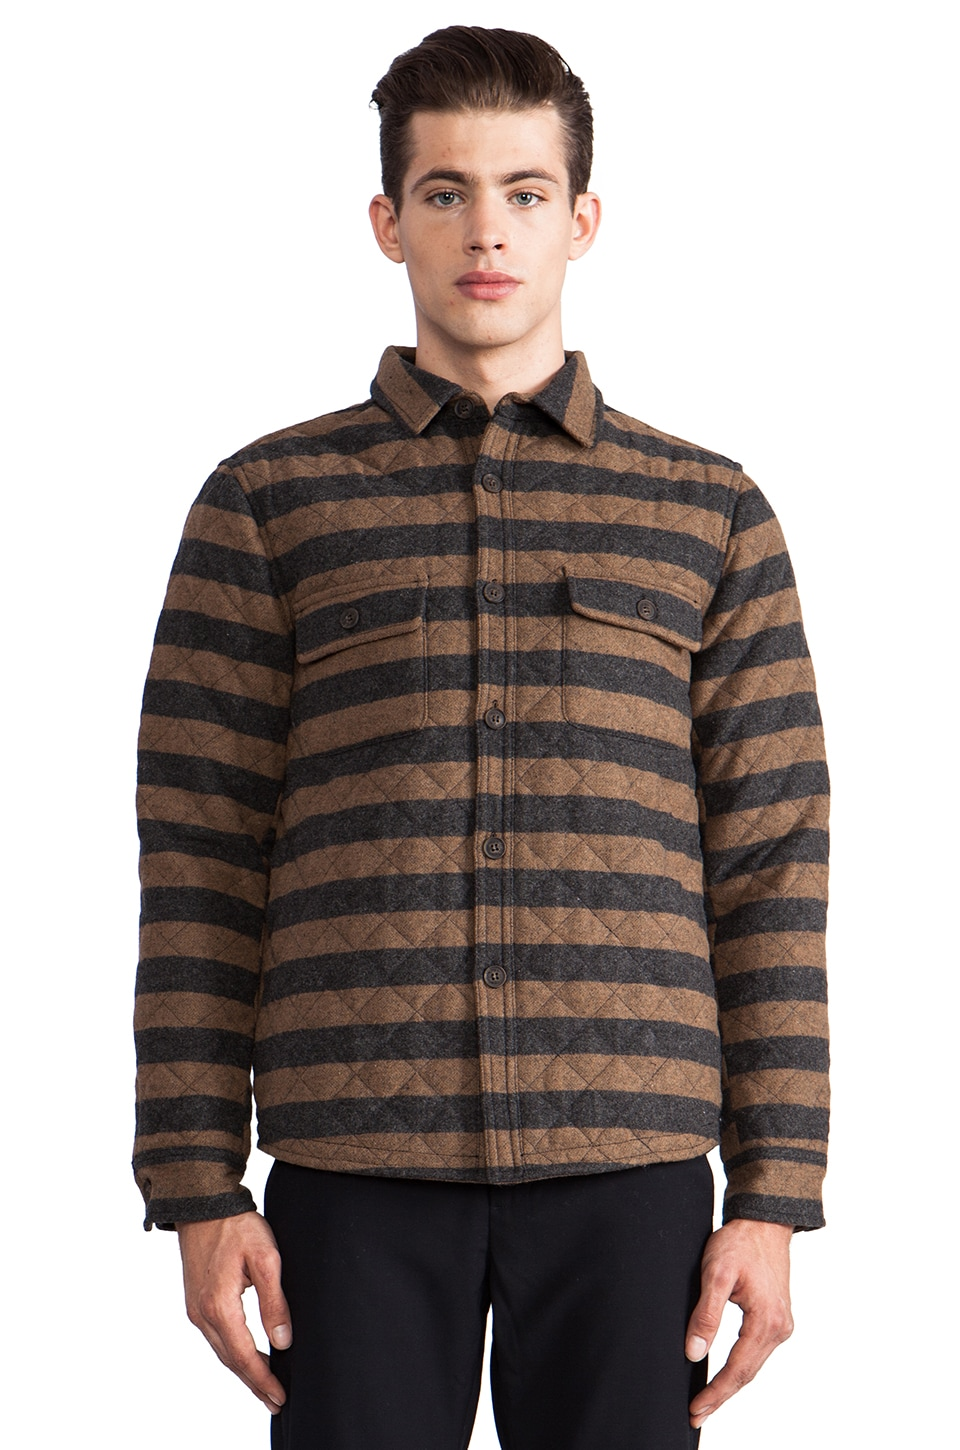 TOVAR Ed Quilted Shirt Jacket in Grey/Mustard Stripe